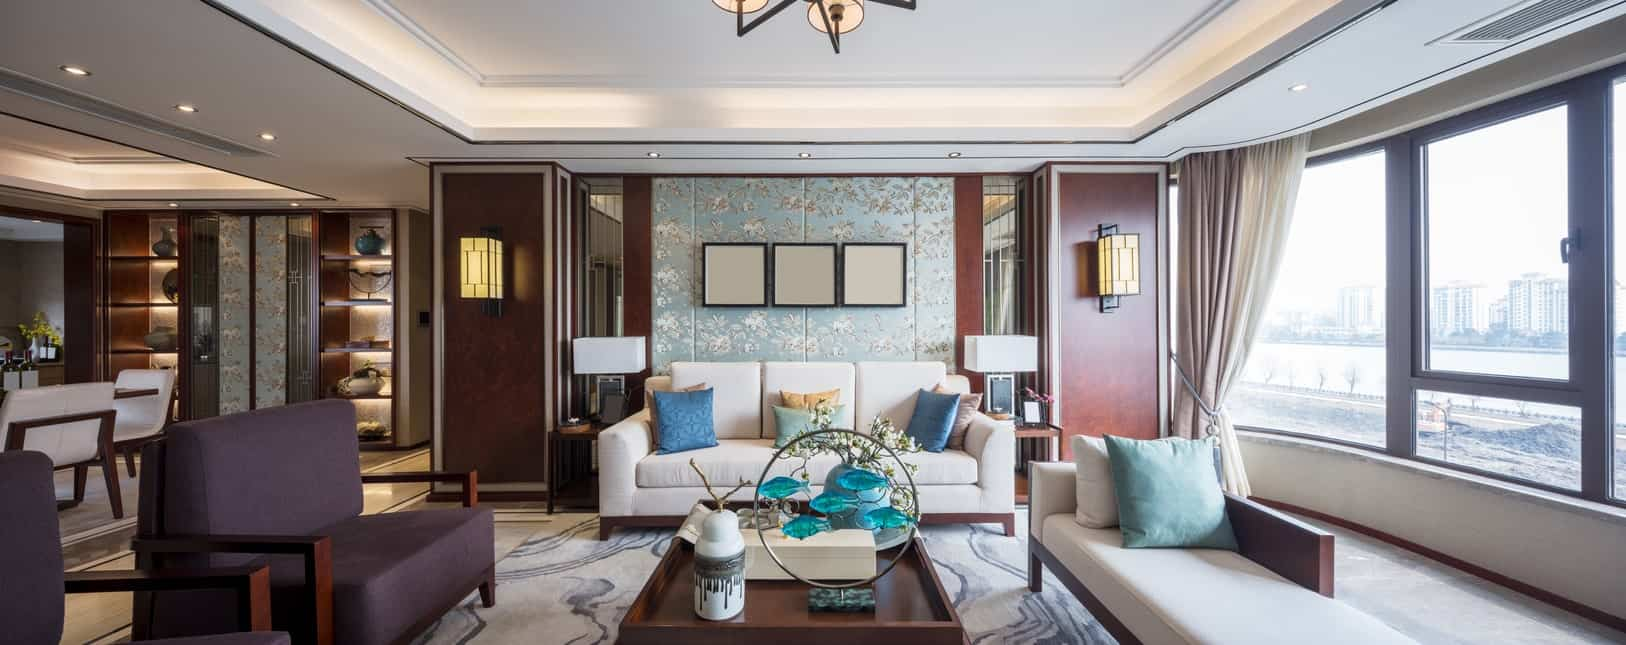 The wall behind the white cushioned sofa is dominated by decorative panels with light blue floral patterns that provide a nice contrast to the dark brown columns with wall-mounted oriental lanterns matching the chandelier of the white tray ceiling.